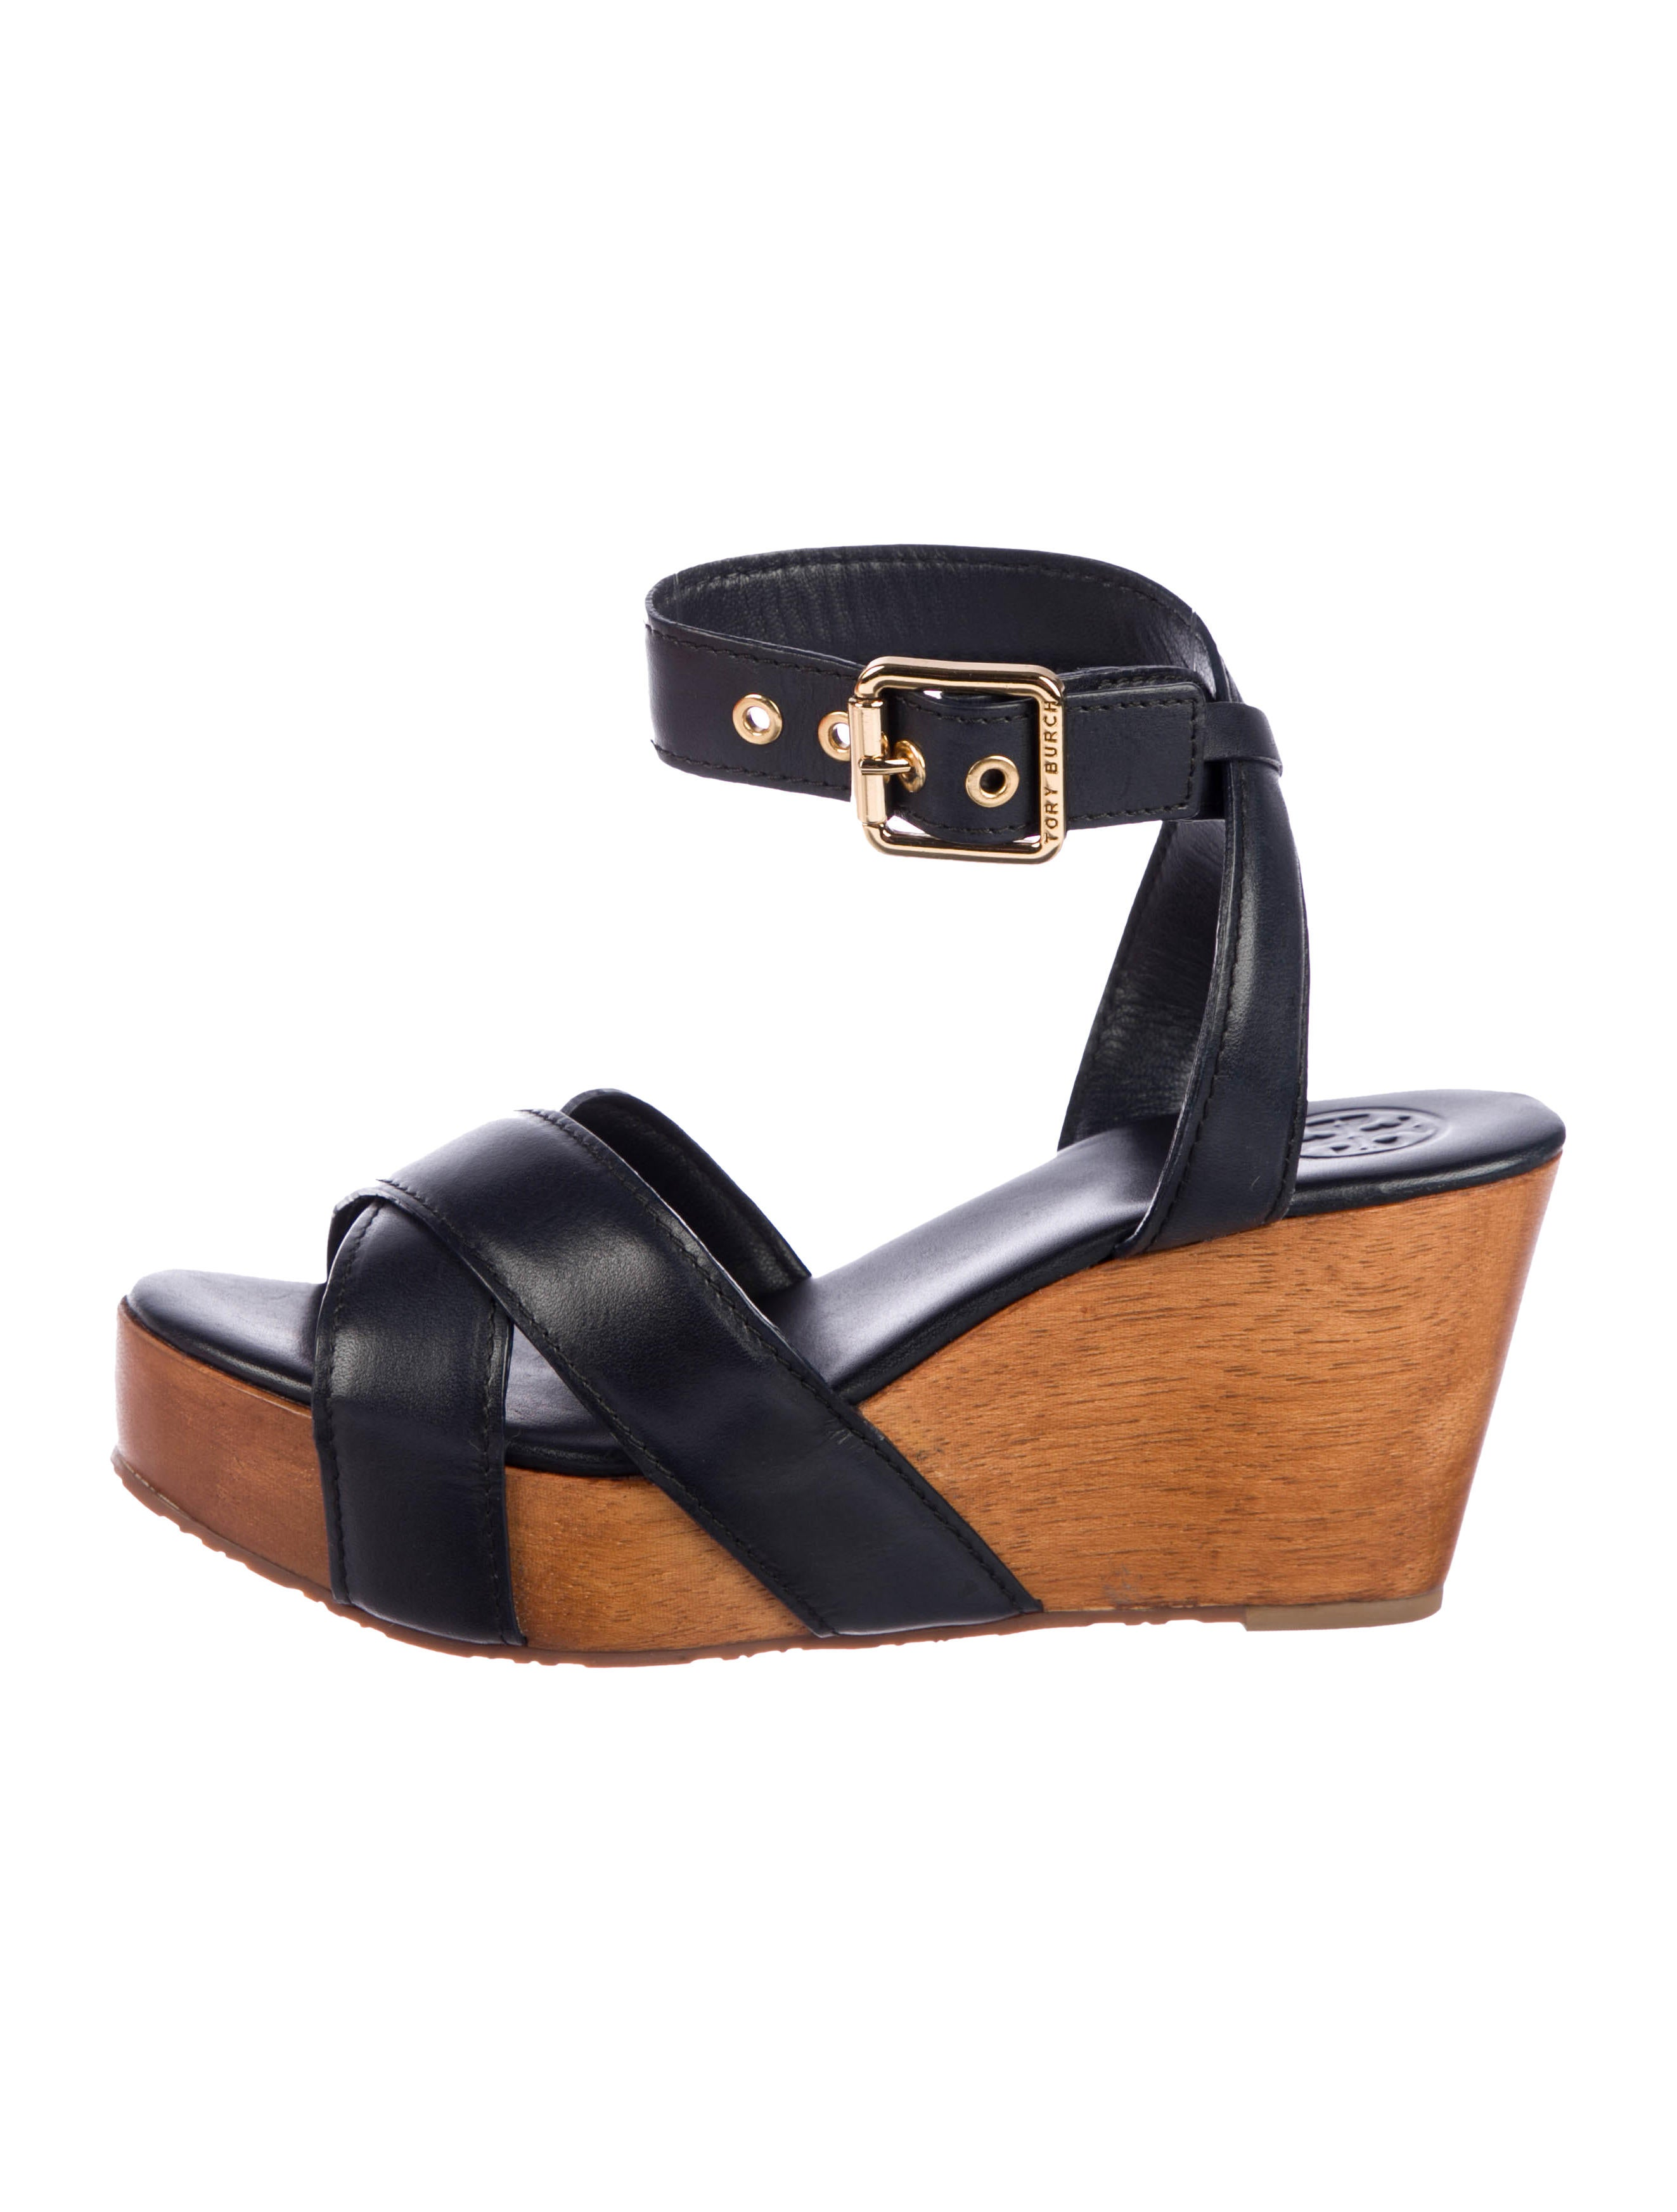 b593418295d Tory Burch Almita Leather Wedges w  Tags - Shoes - WTO156638